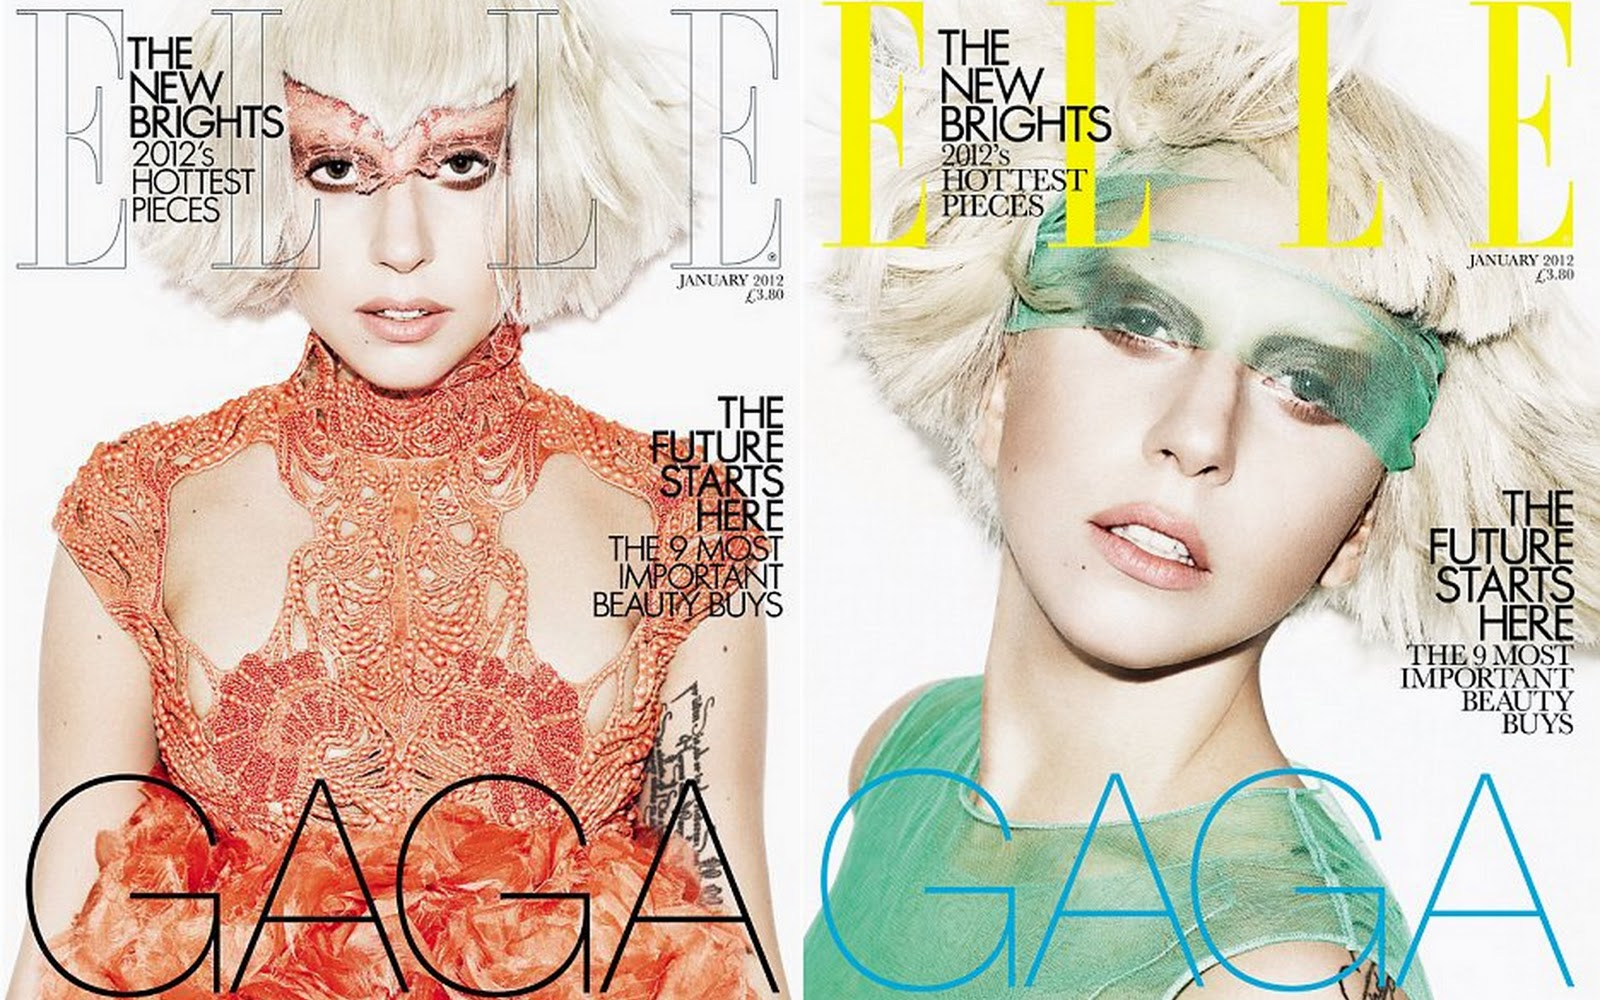 Lipstick Glamour: Going Gaga for Gaga